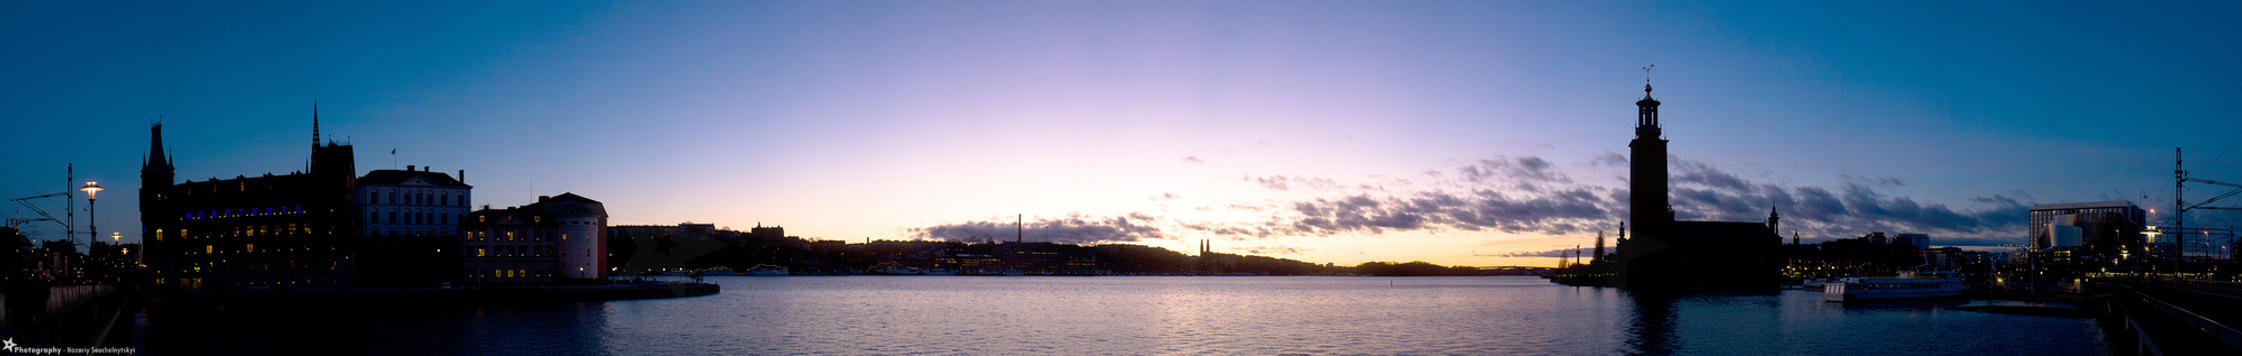 Stockholm Sunset by MiddleStar